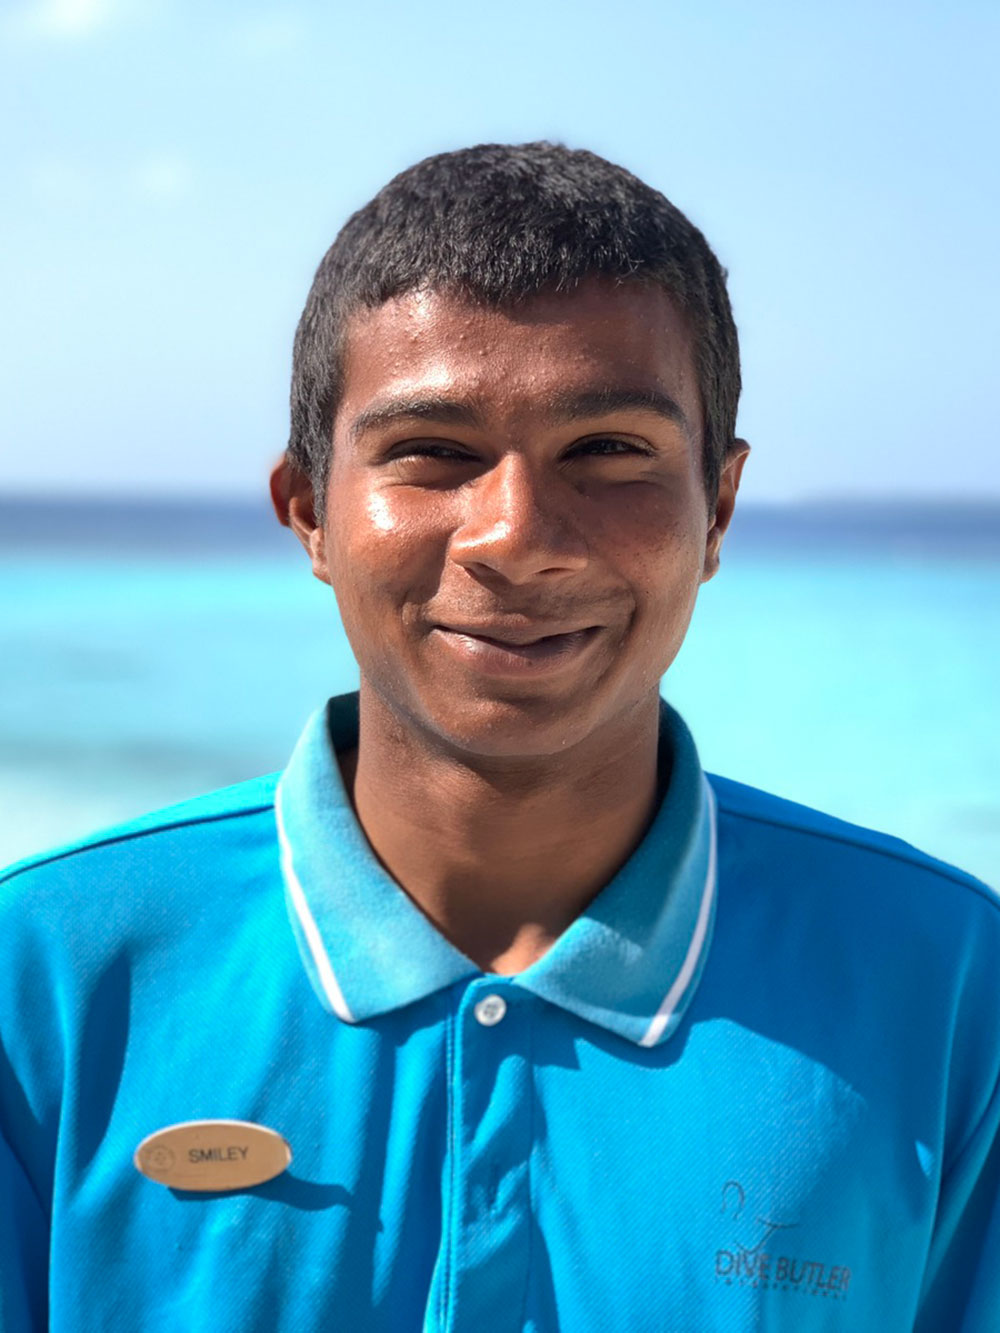 Amilla Water Sports Team Maldives